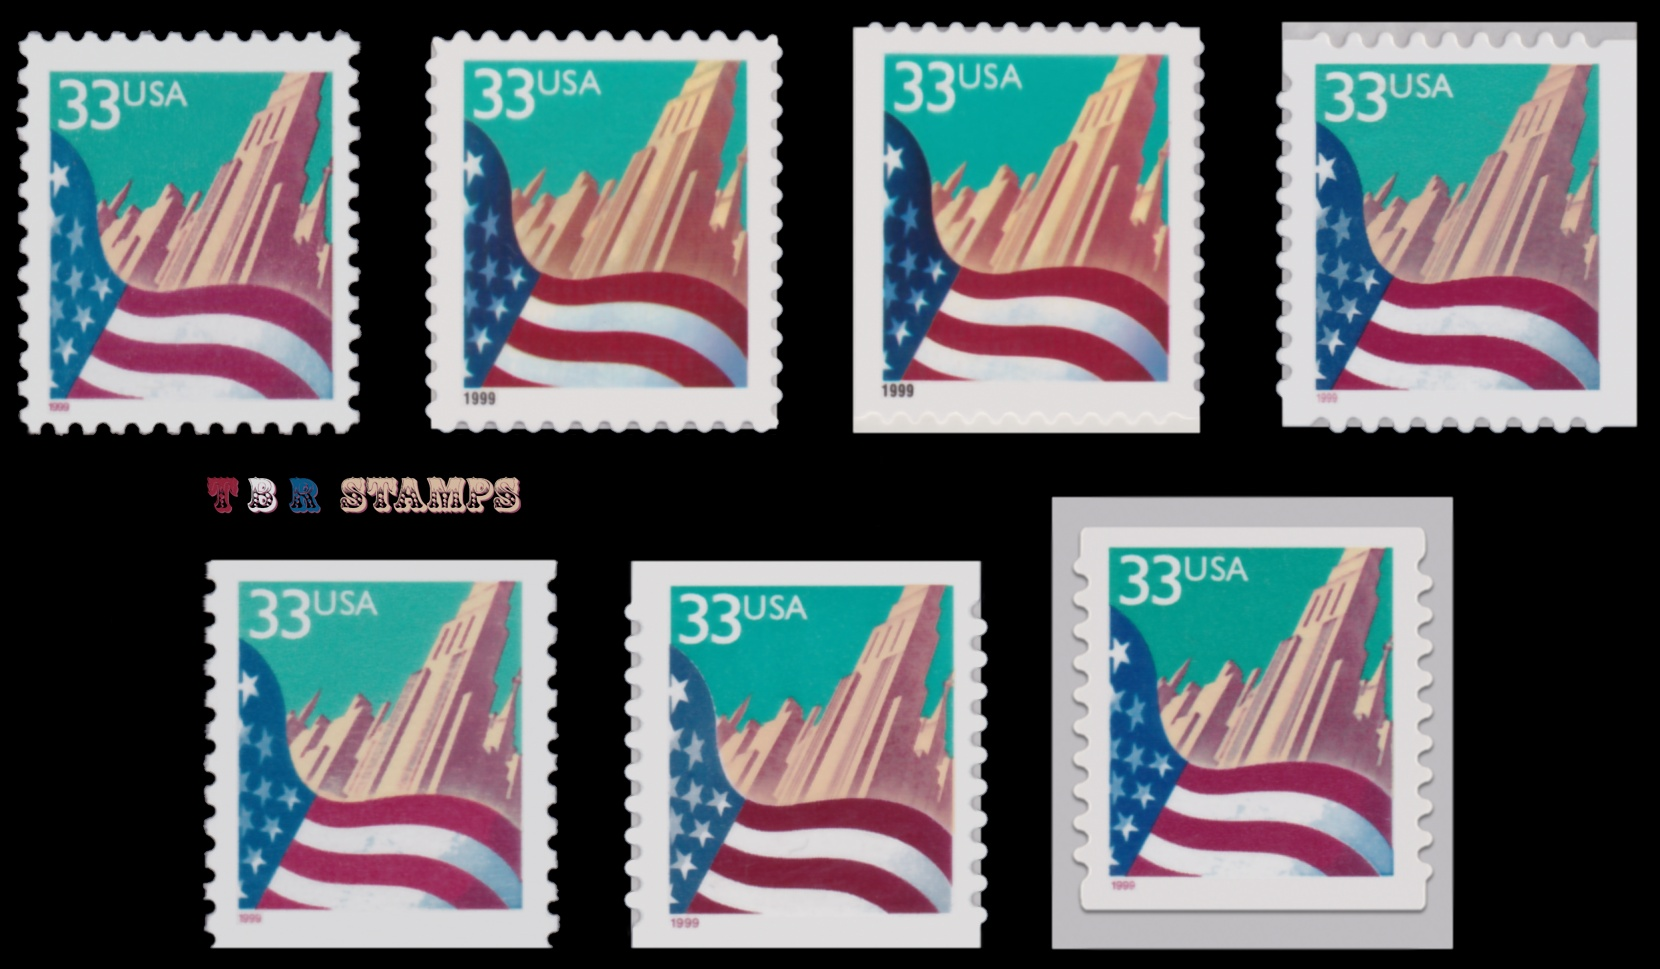 Details About 3277 3278 3278f 3279 3280 3281 3282 City Flag 33c Complete Set 7 Mnh Buy Now